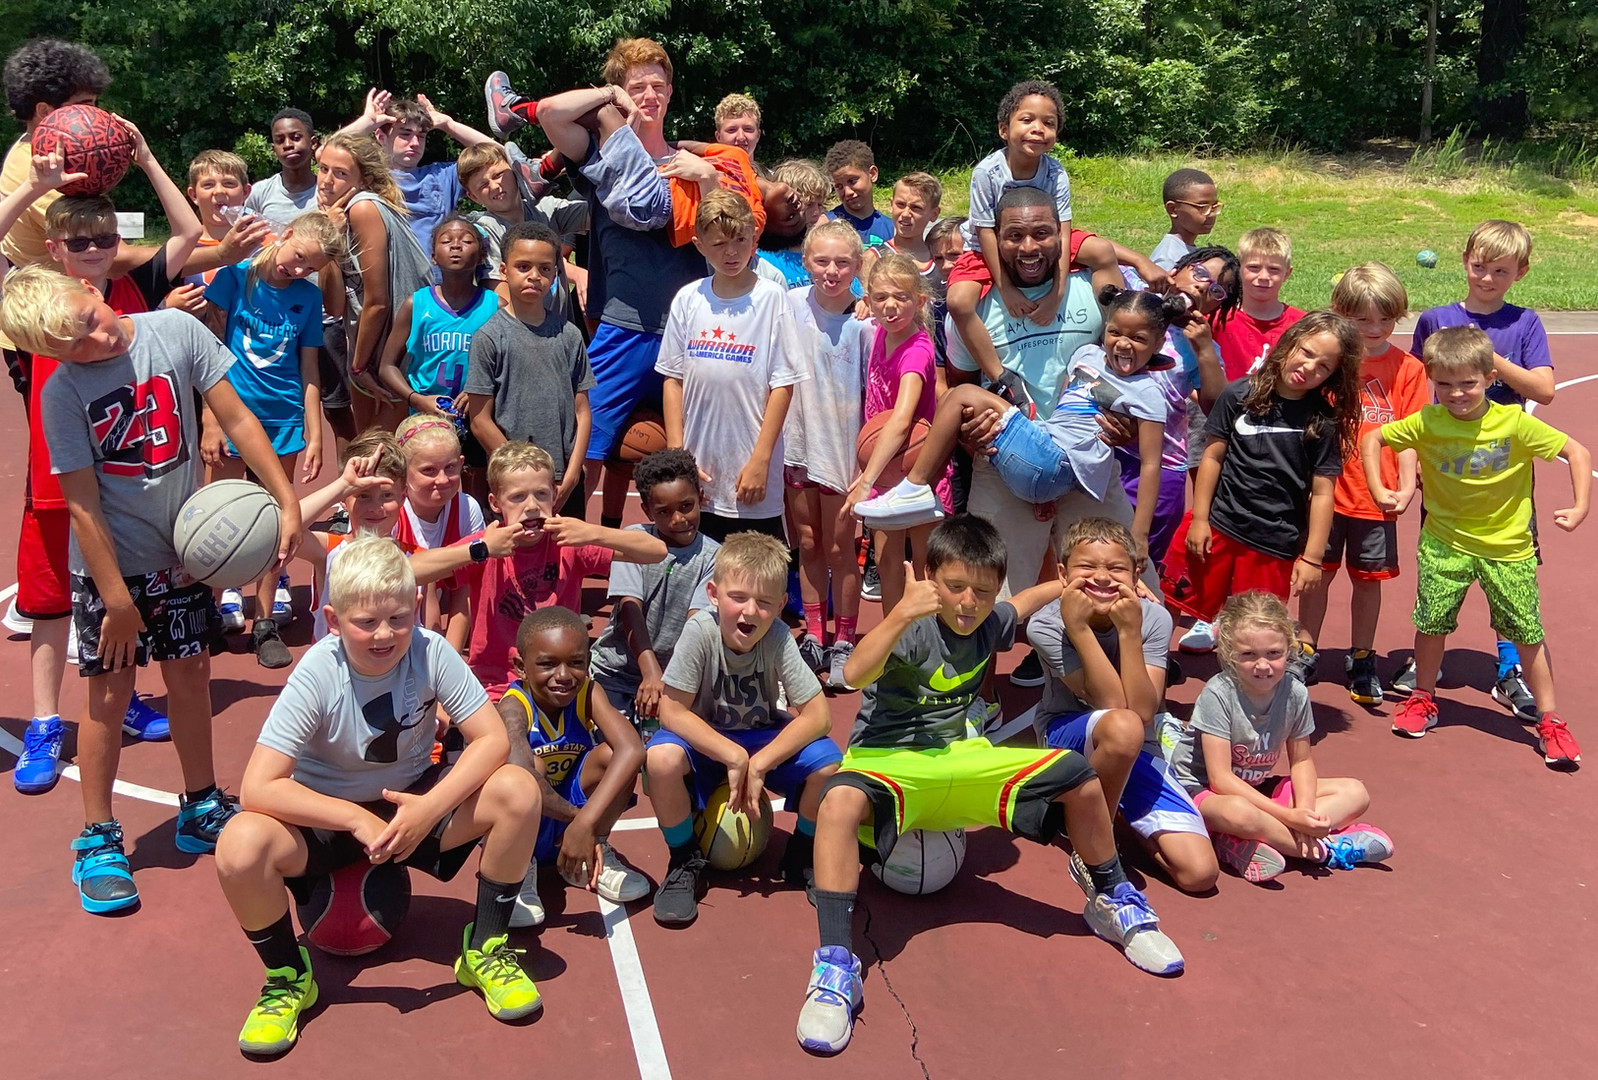 Summer Camps in Charlotte NC | Summer Camps Charlotte NC